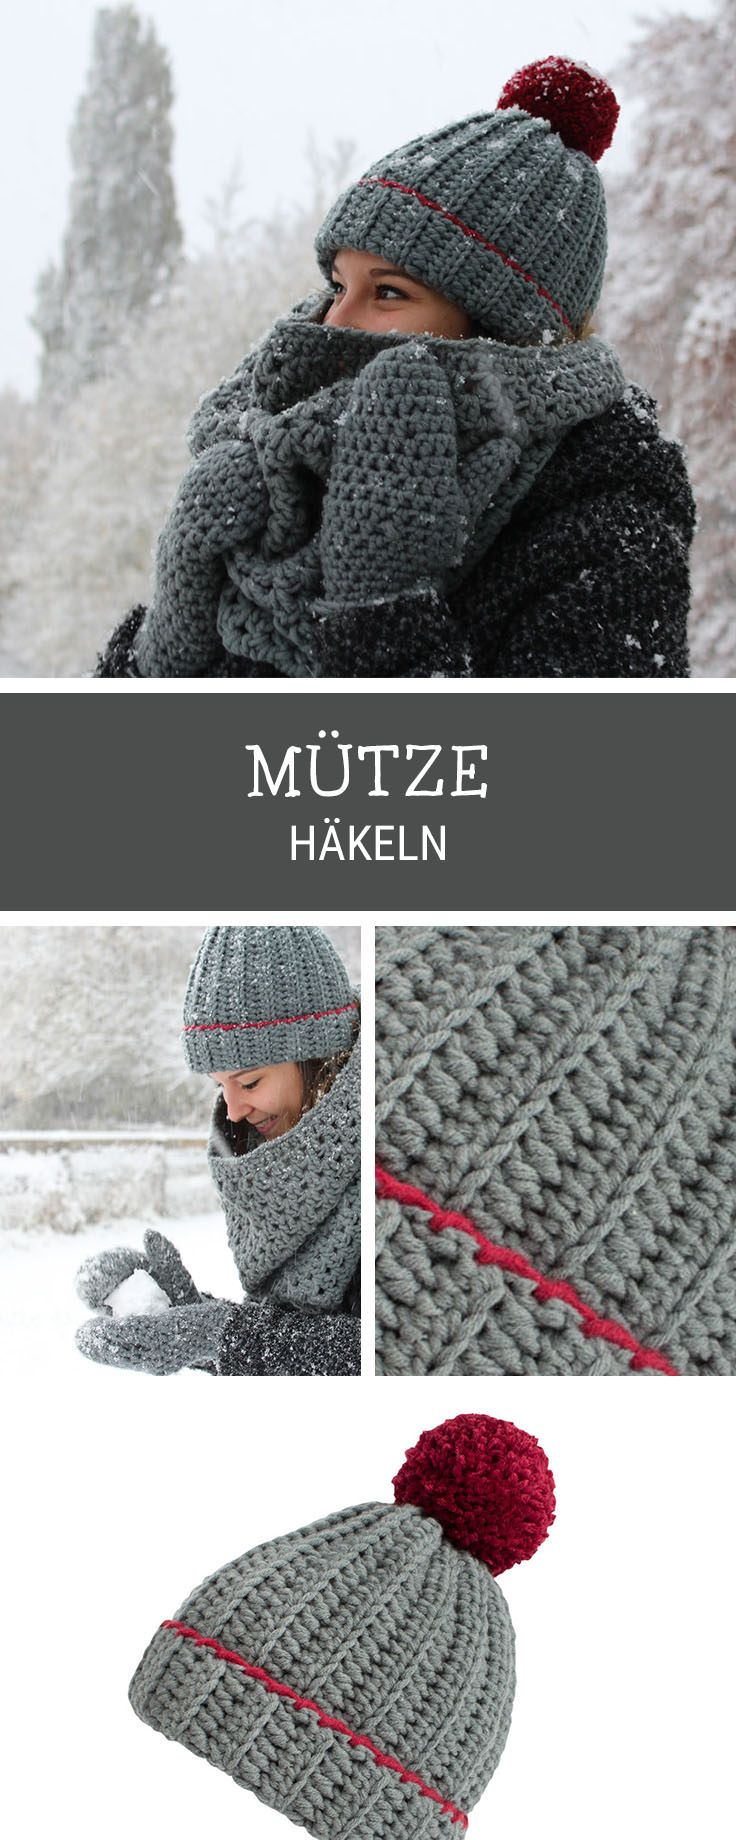 101 best Häkeln images on Pinterest | Knit crochet, Chrochet and ...